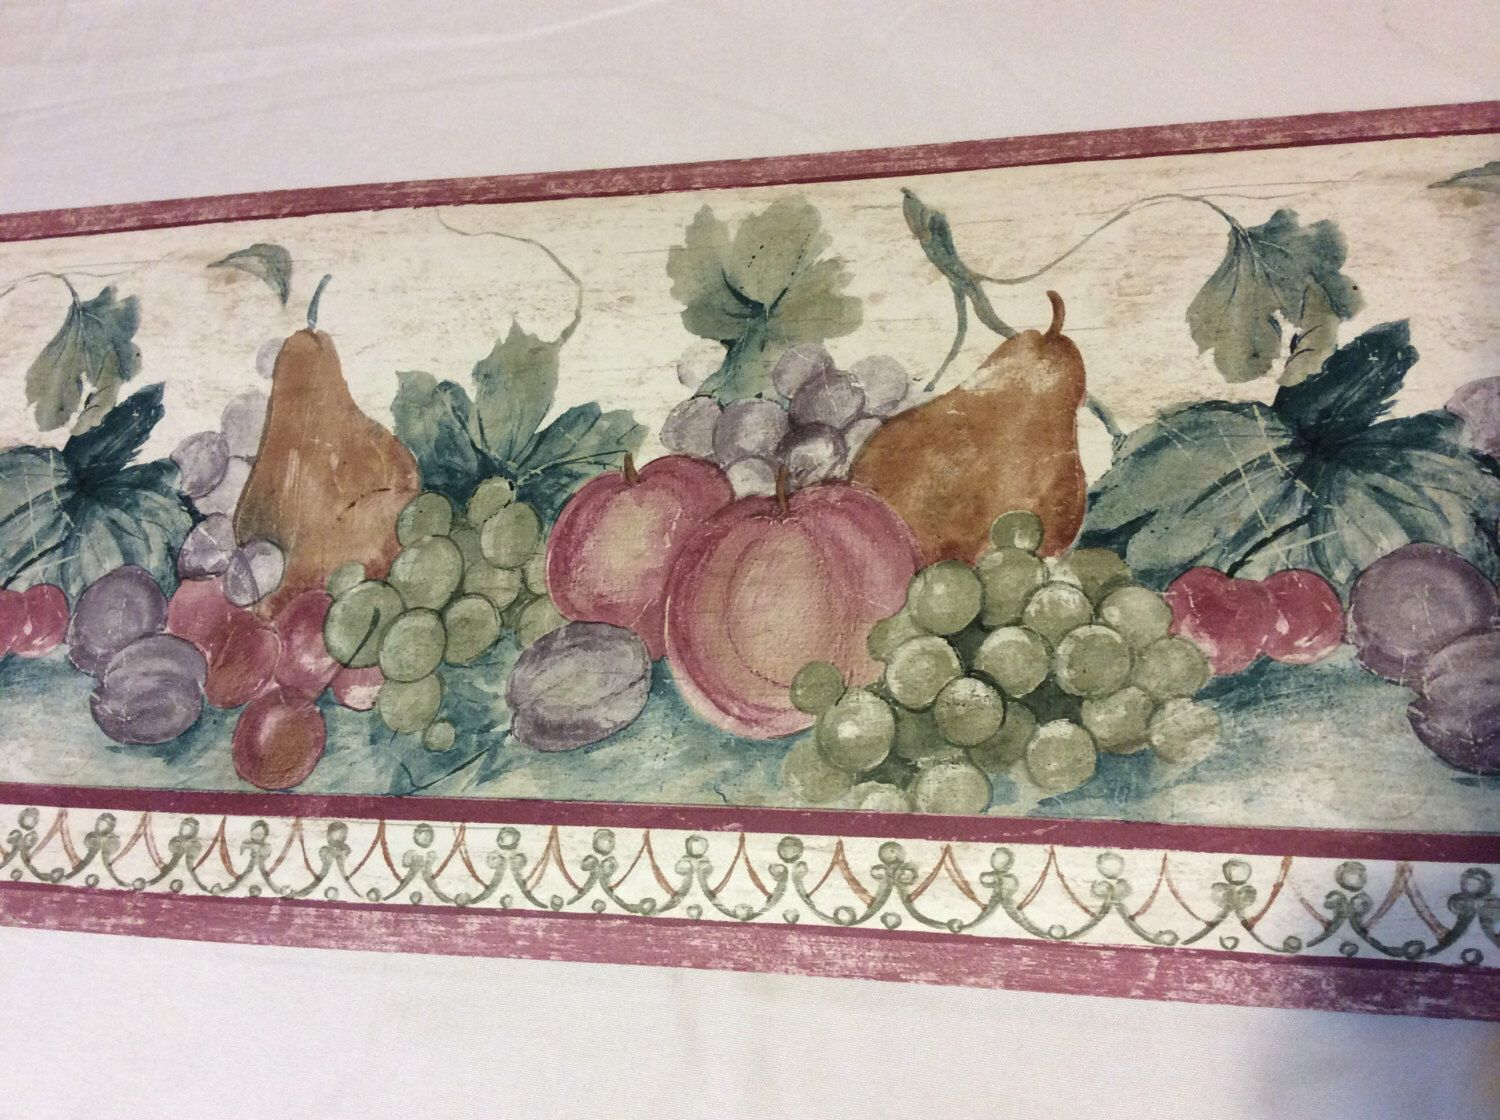 French Country Full Vintage Fruit Wallpaper Border 5 yards